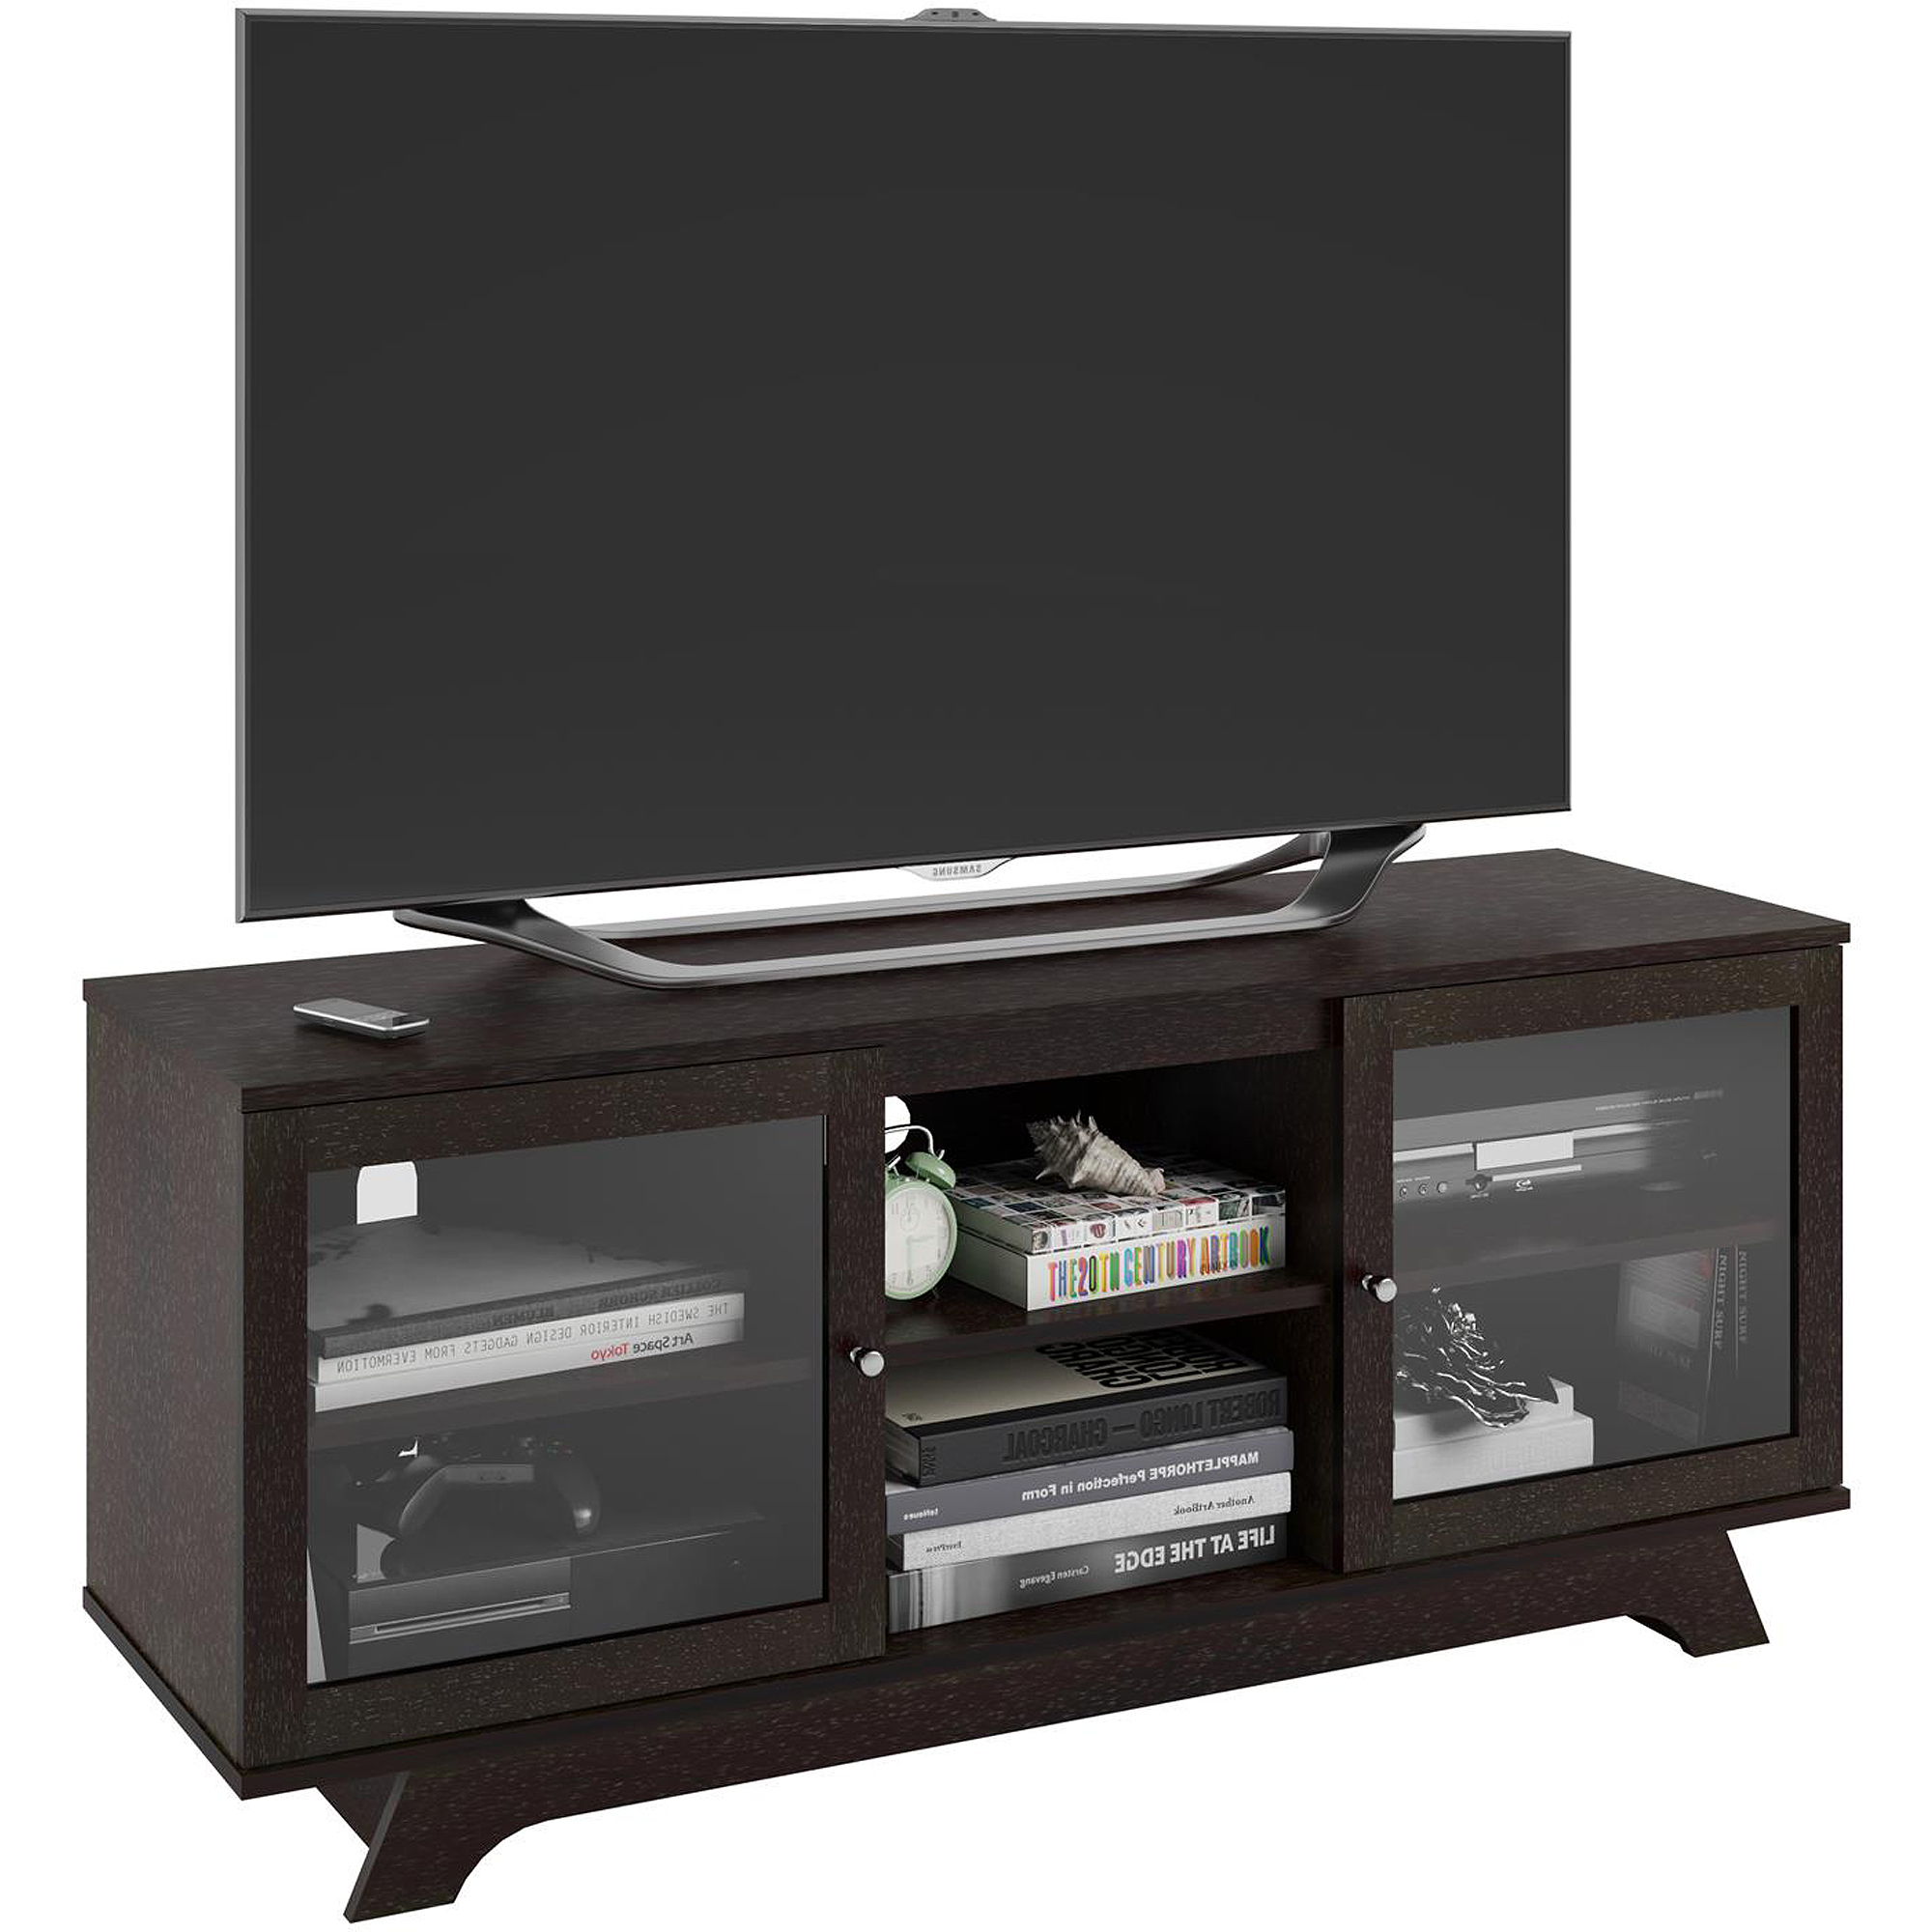 "2018 Tv Cabinets With Storage With Regard To Ameriwood Home Englewood Tv Stand For Tvs Up To 55"", Espresso (View 17 of 20)"